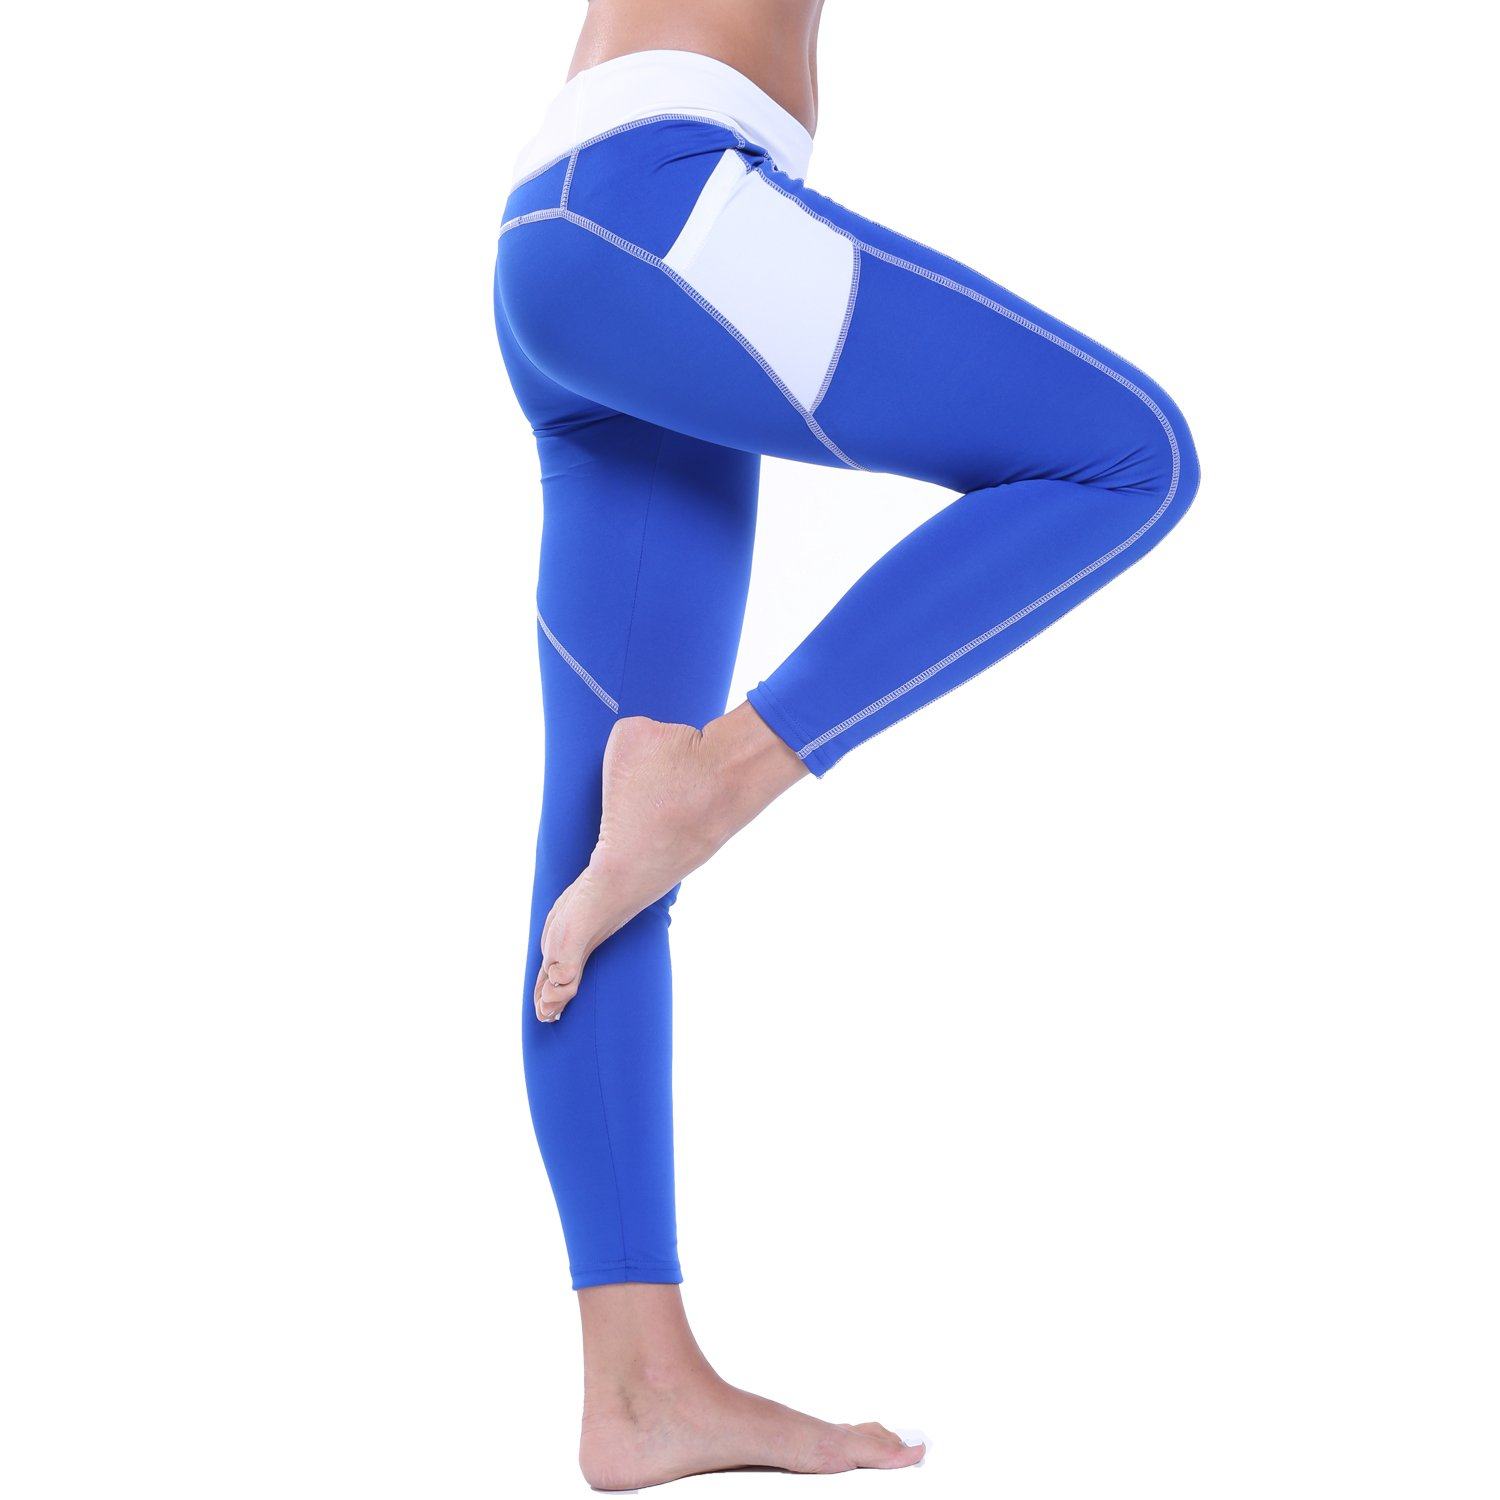 0f7dba470c554 FITTOO Women's High Waist Workout Leggings Skinny Side Pockets Color Block  Heart Yoga Pants Tummy Control at Amazon Women's Clothing store: